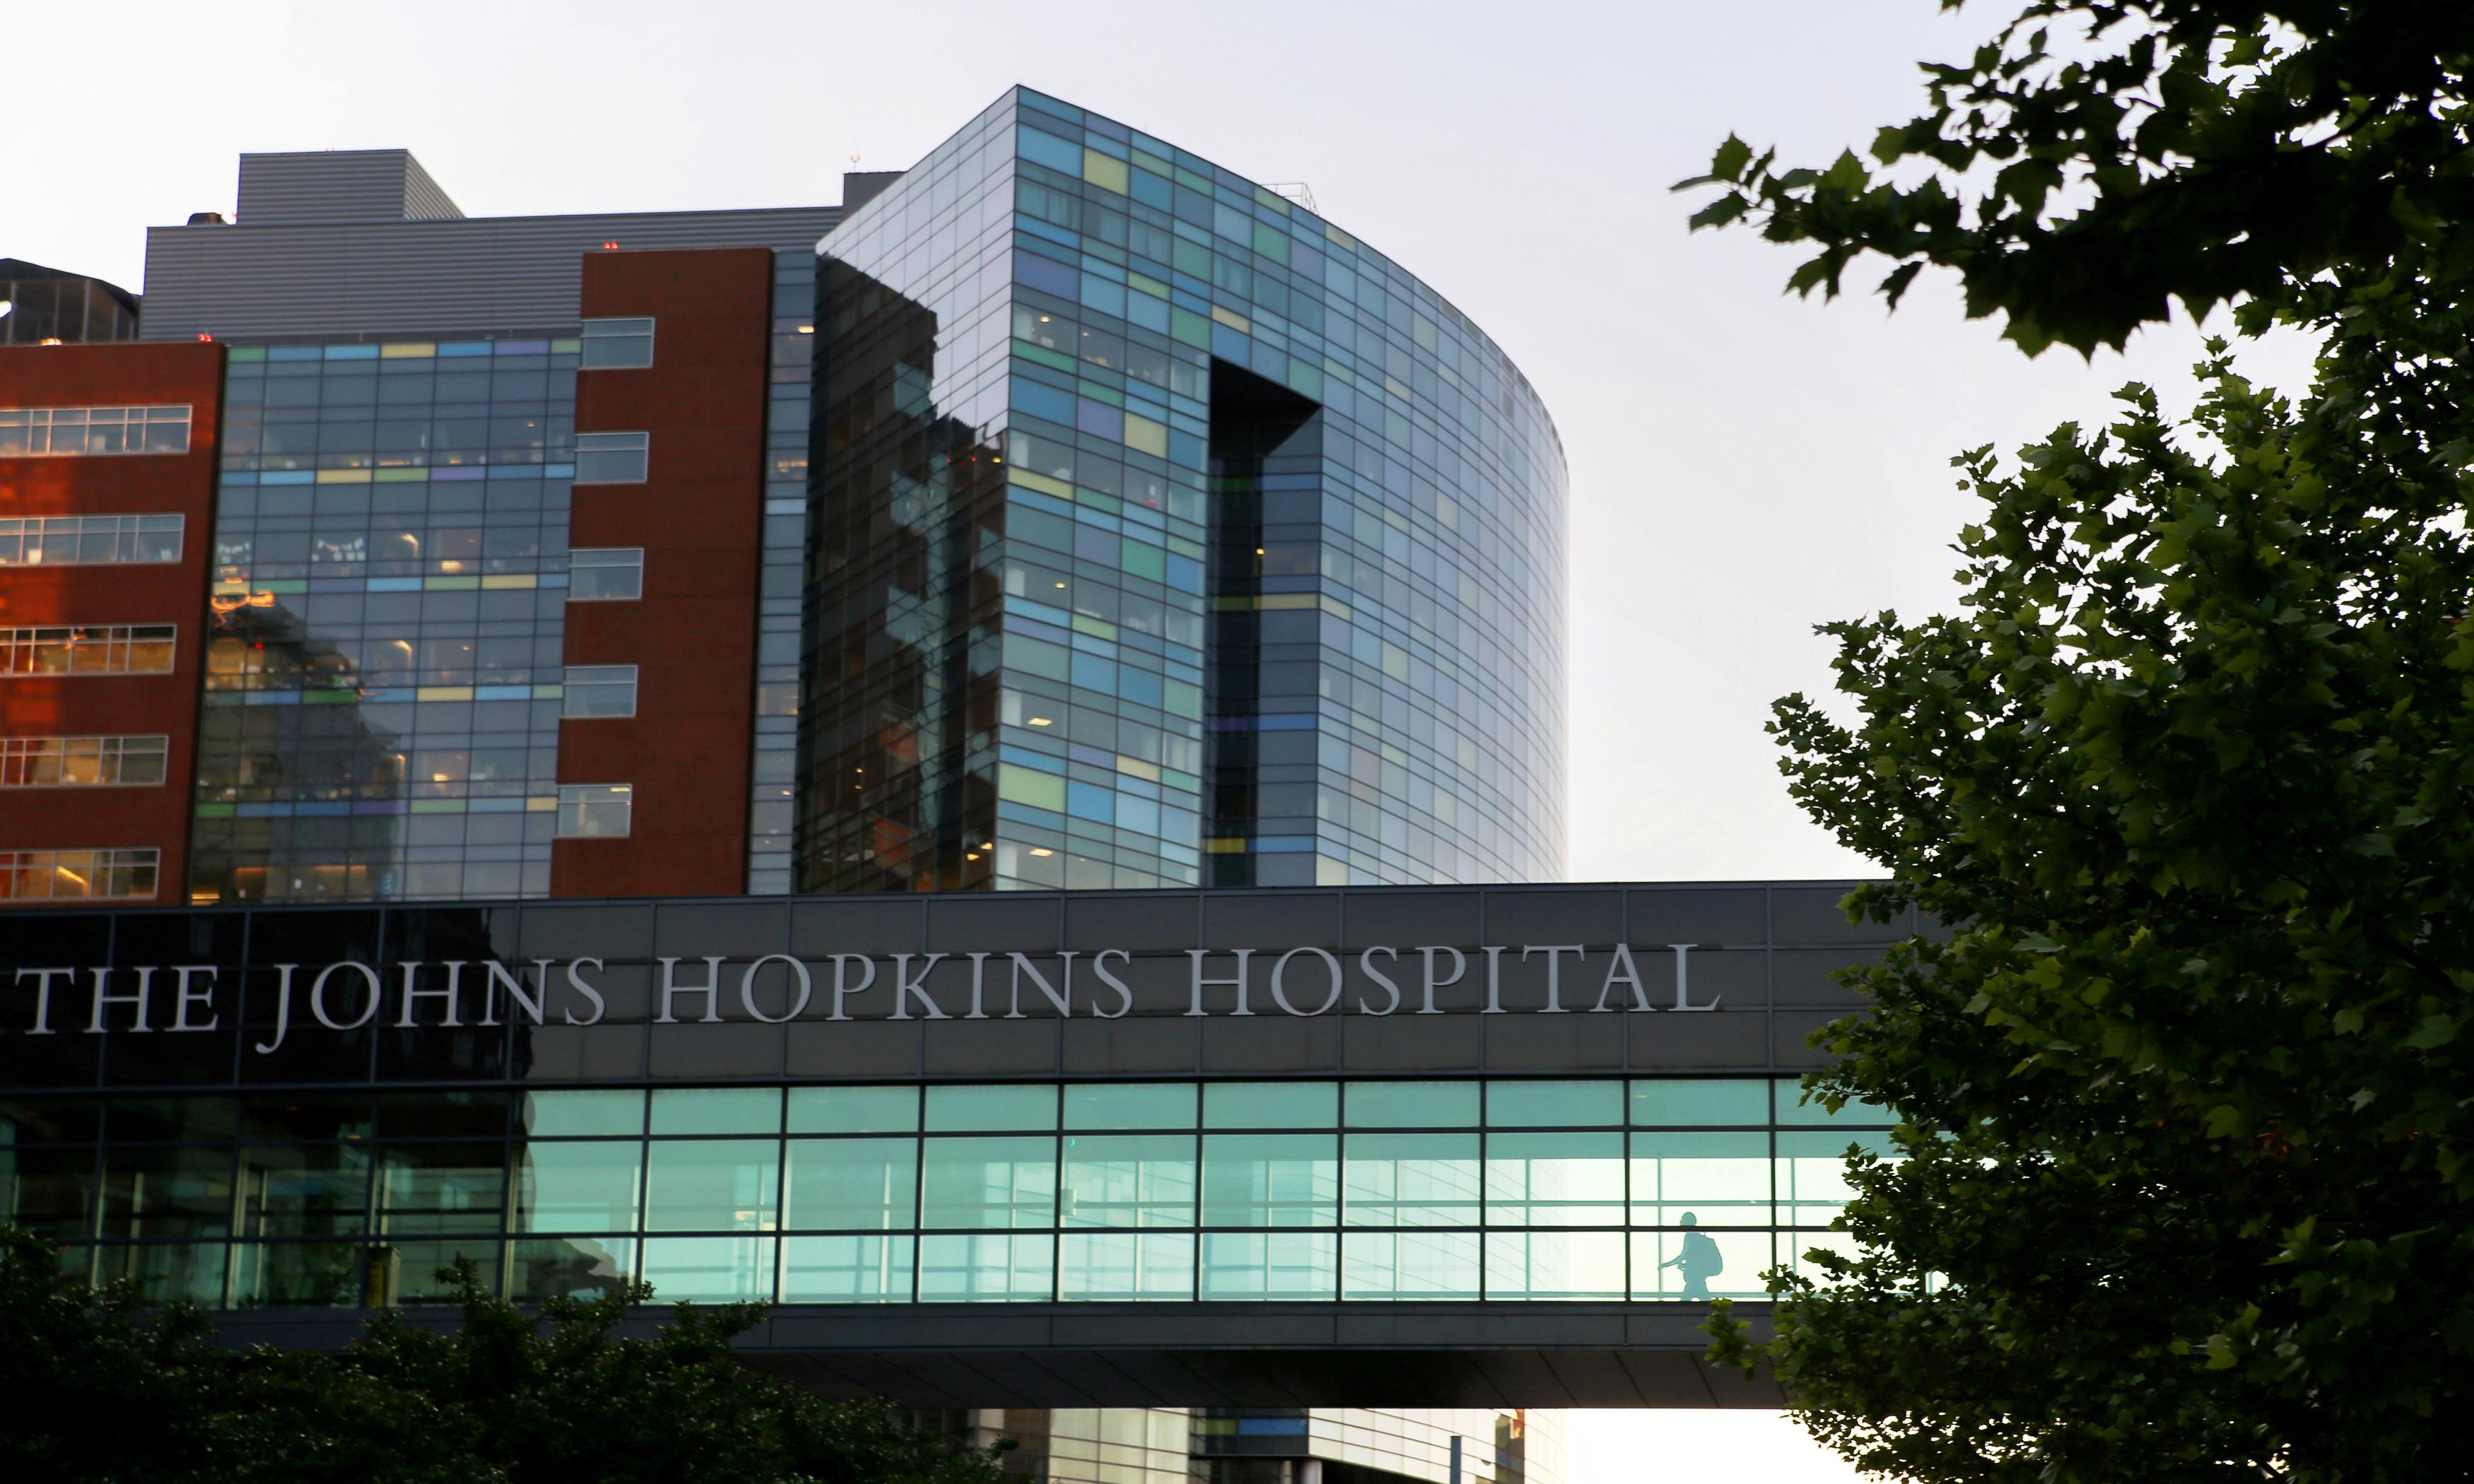 Johns Hopkins hospital sued poor and African American patients, study shows